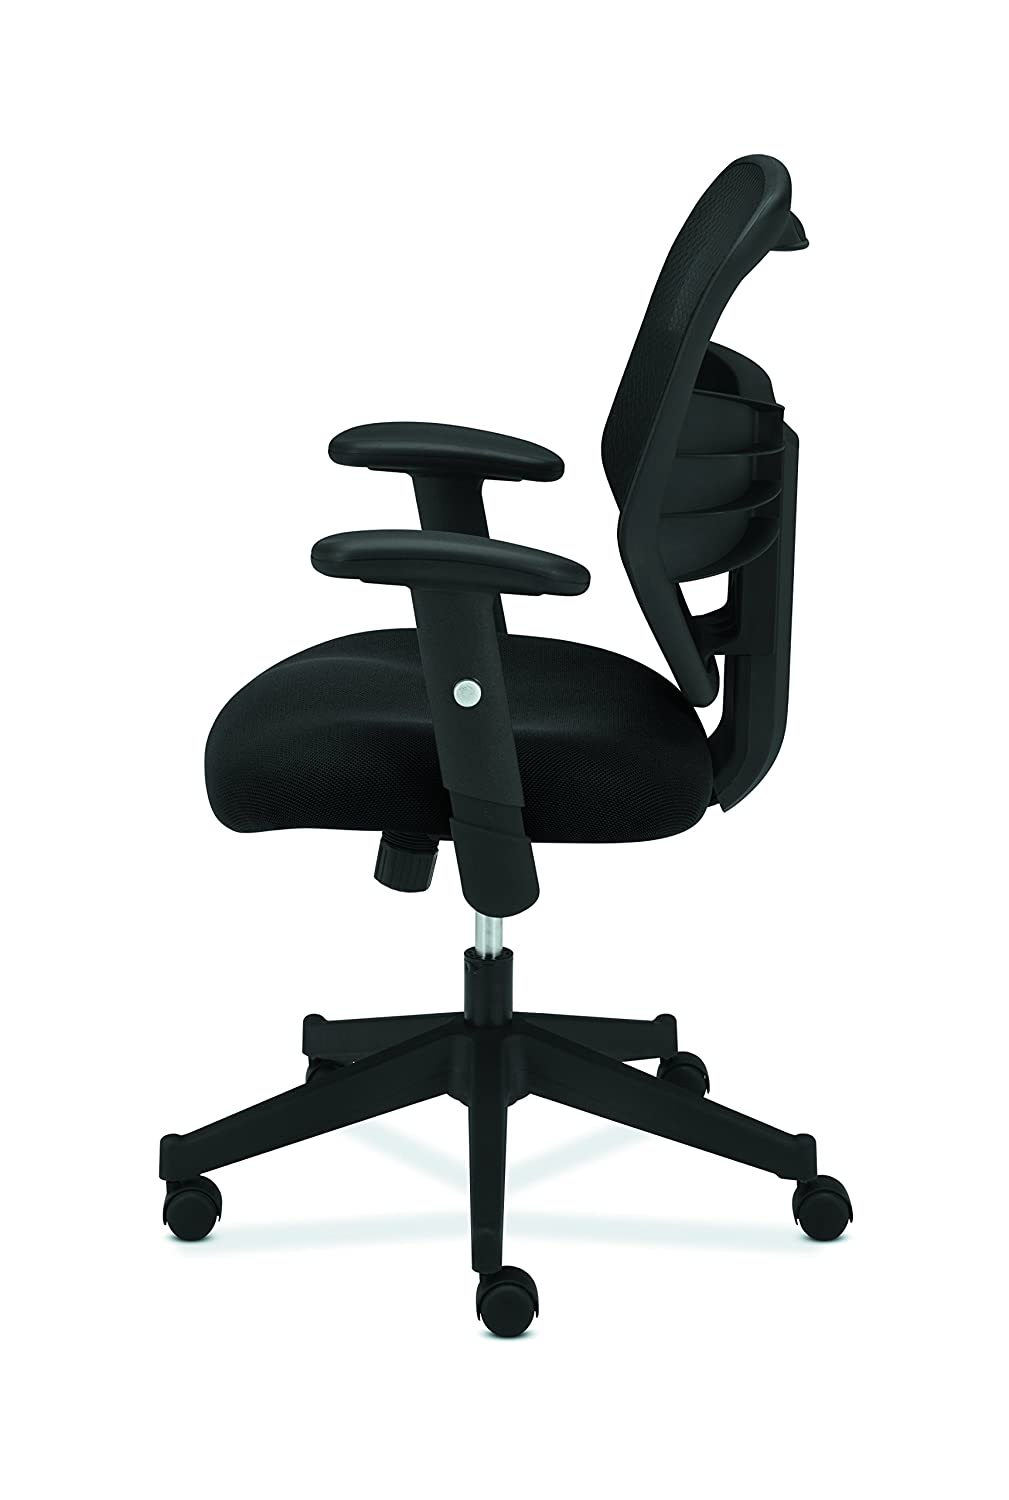 Black HVL531 Mesh Computer Chair for Office Desk HON Prominent High Back Work Chair